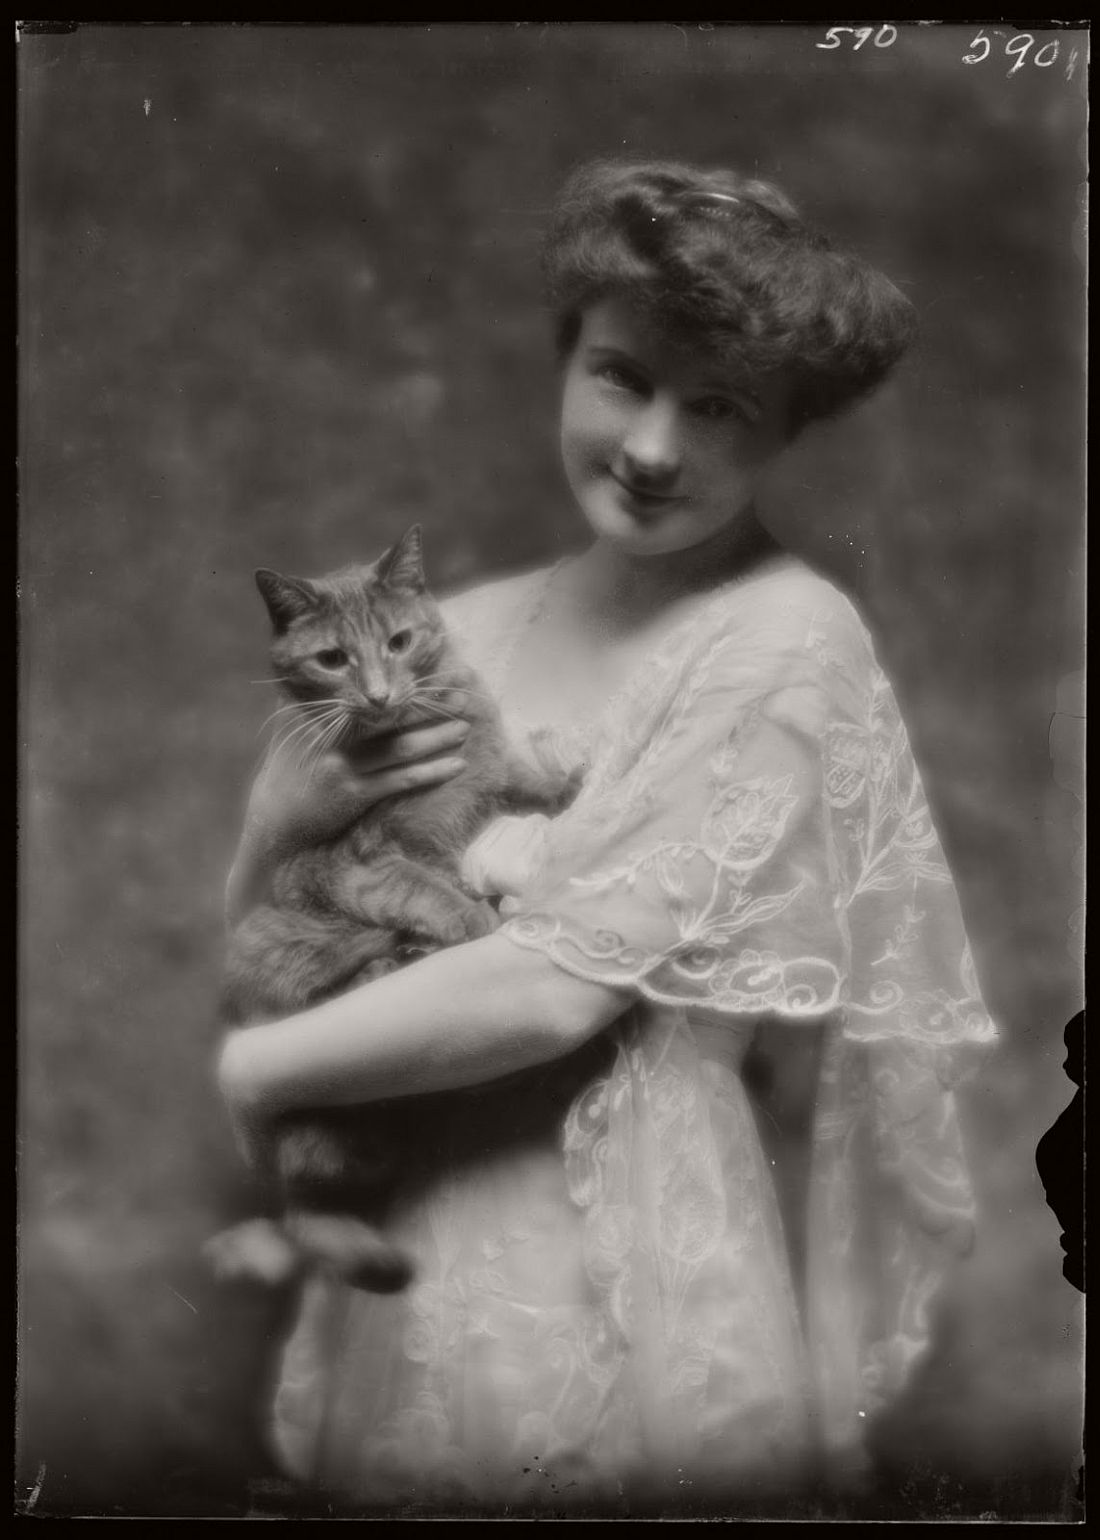 arnold-genthe-1910s-vintage-studio-portraits-of-girls-with-cat-21